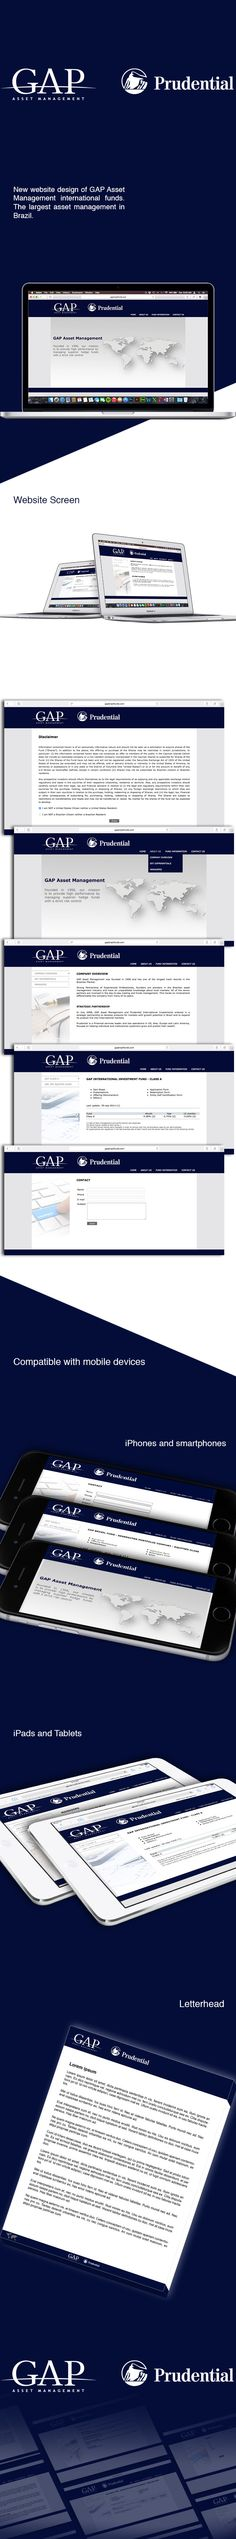 This website was developed and designed for the GAP Asset Management and Prudential.